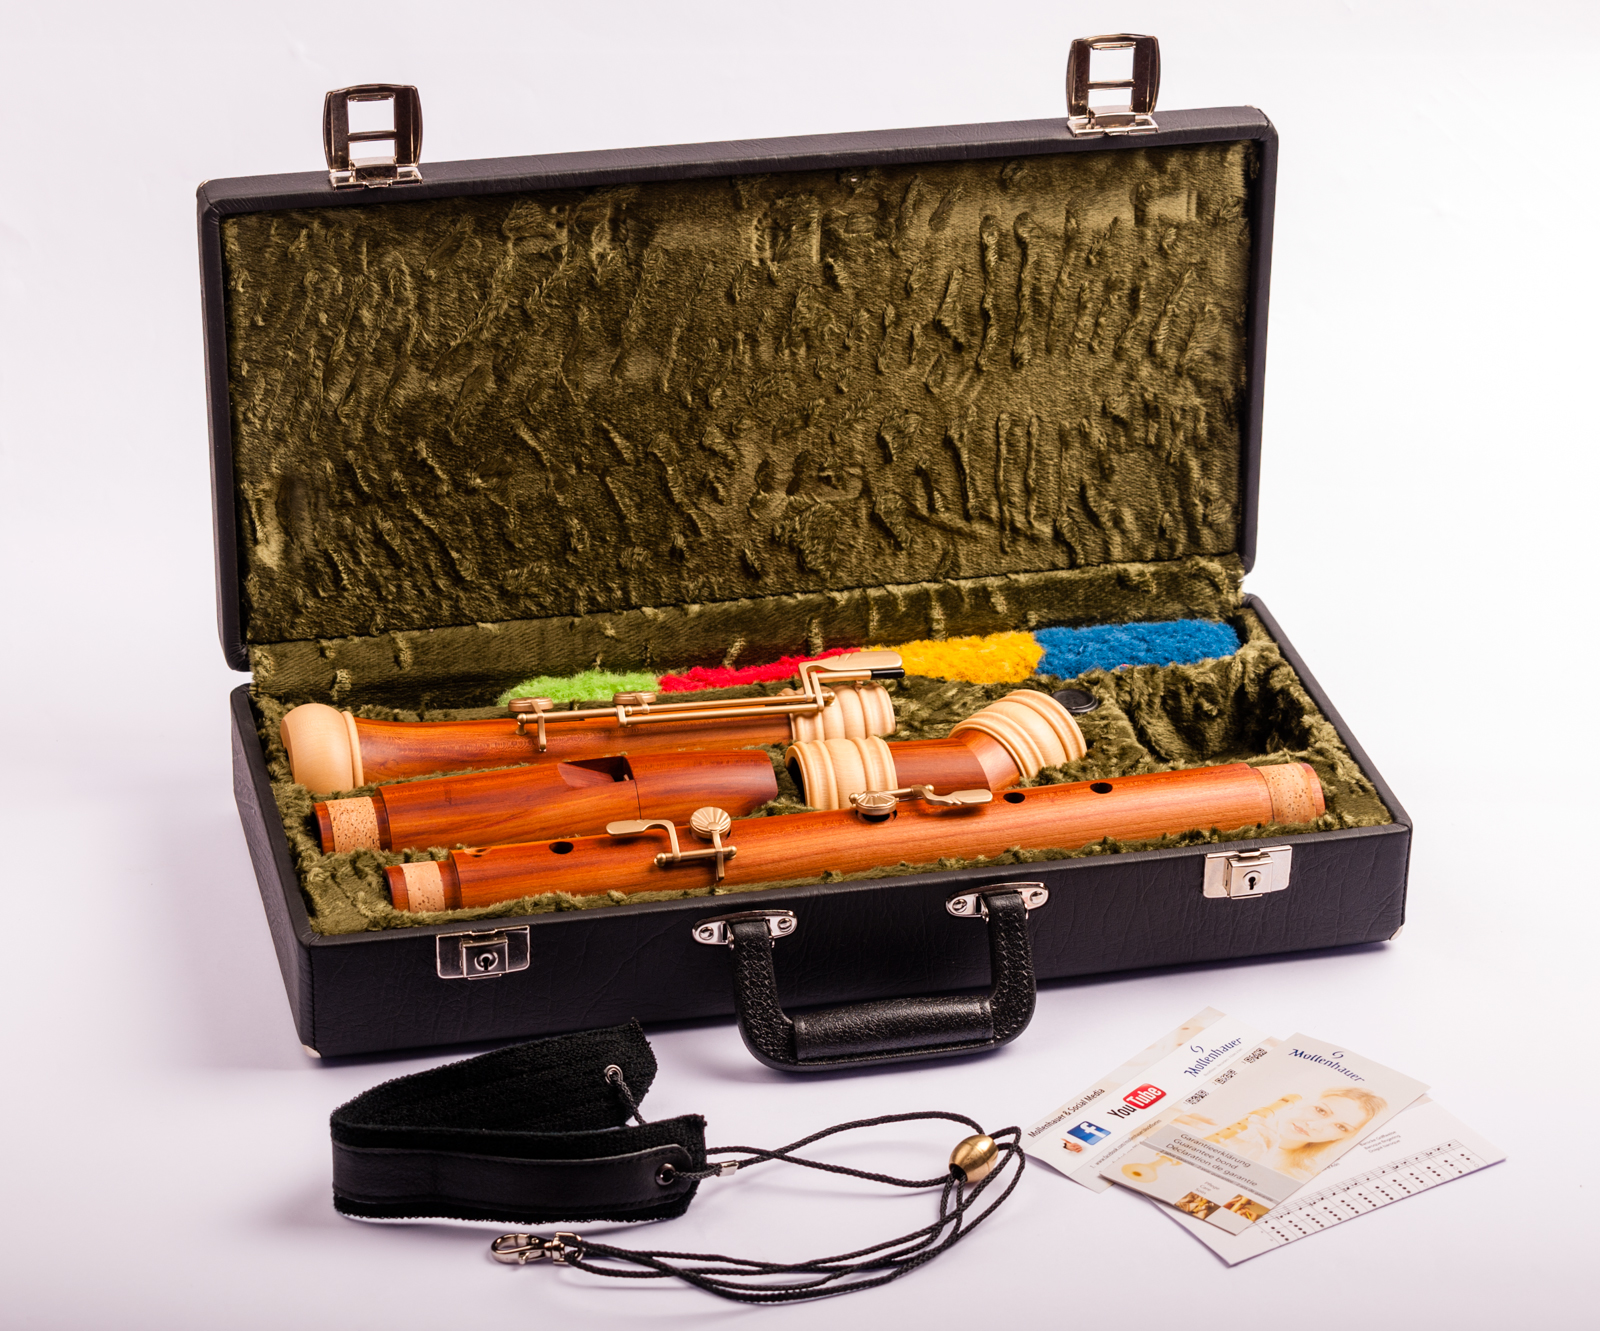 Bass recorder Mollenhauer TE-4528 baroque in plumwood